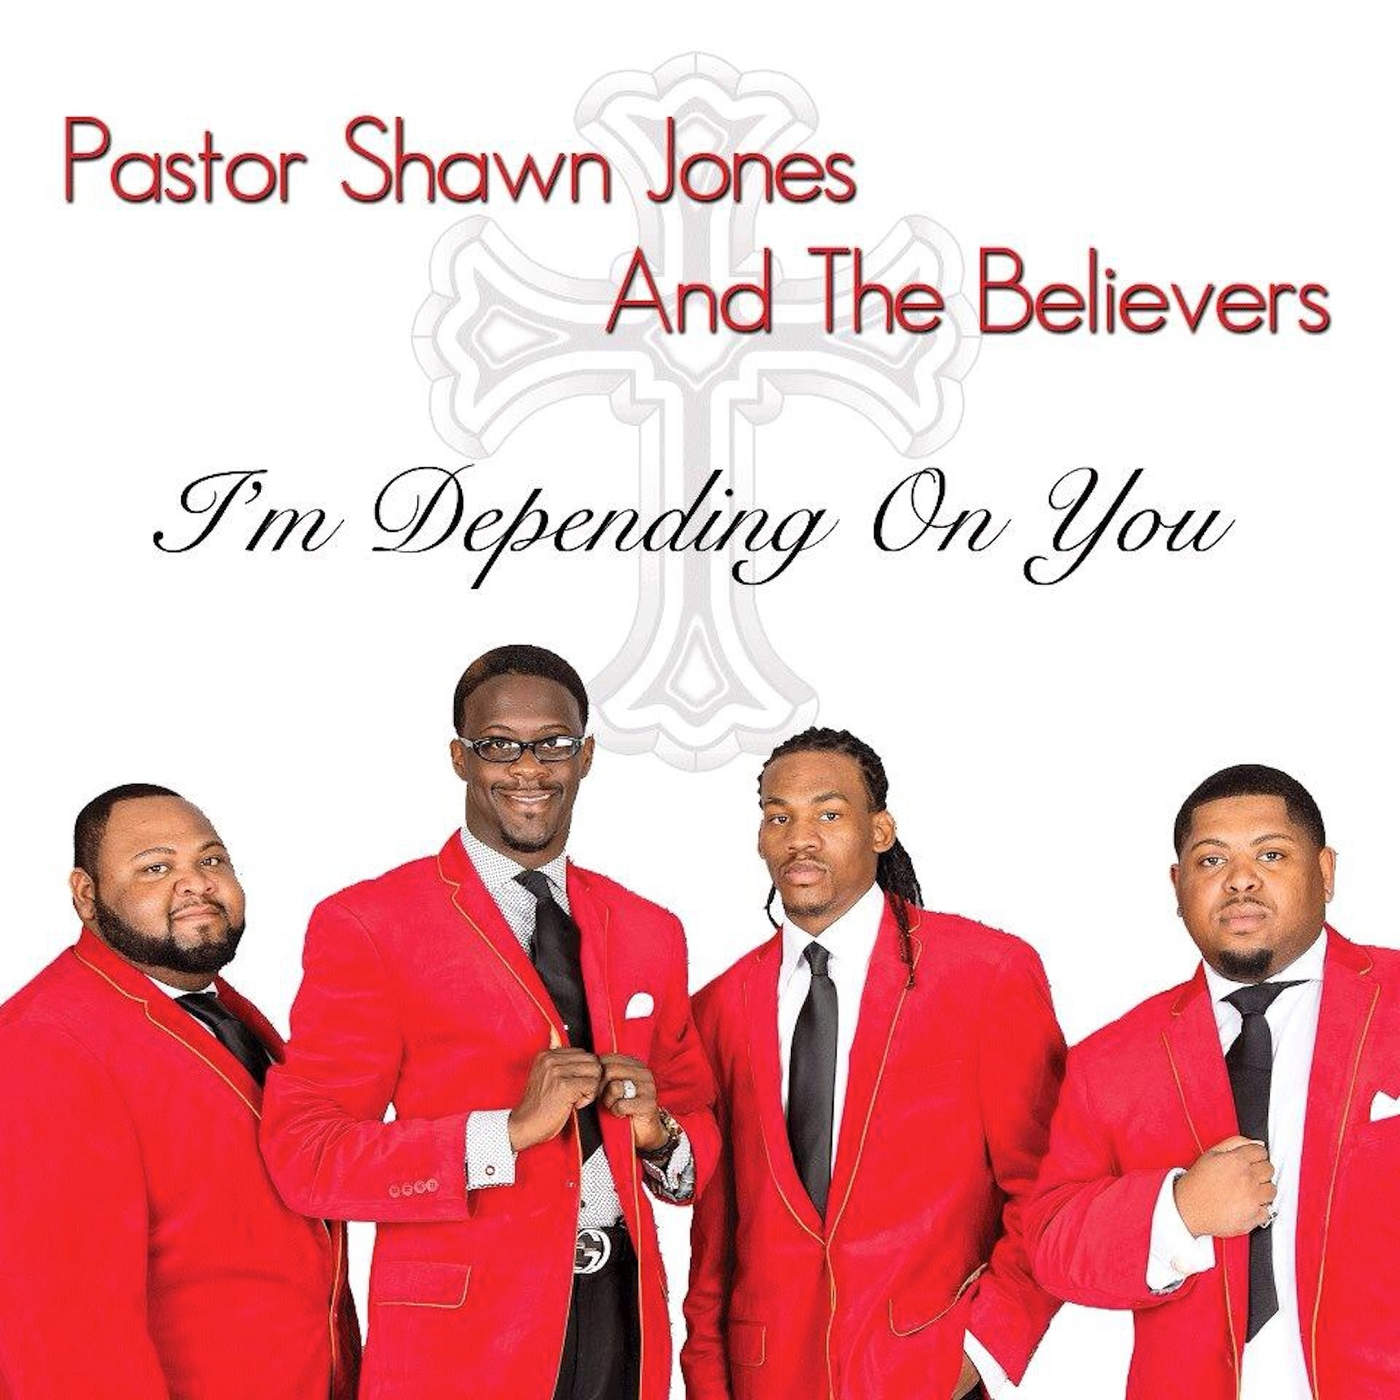 Art for I'm Depending on You by Shawn Jones & the Believers